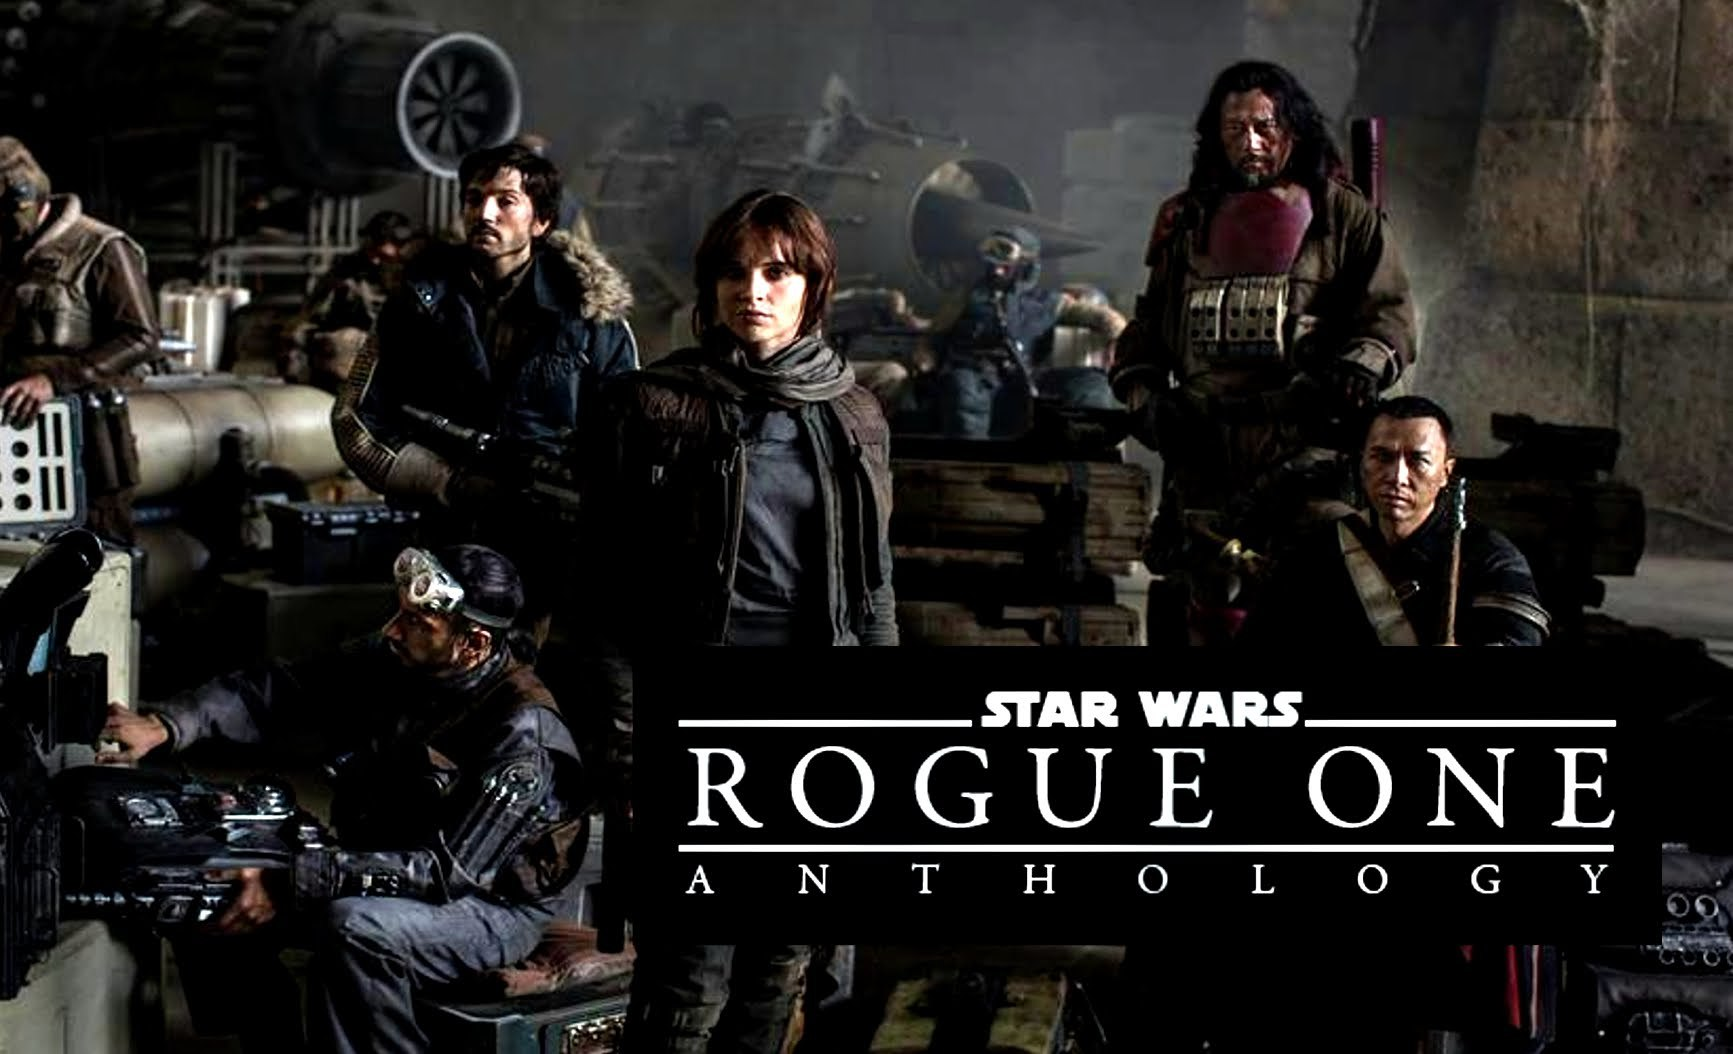 Star Wars Rogue One Wallpaper: Star Wars: Rogue One Wallpapers Images Photos Pictures